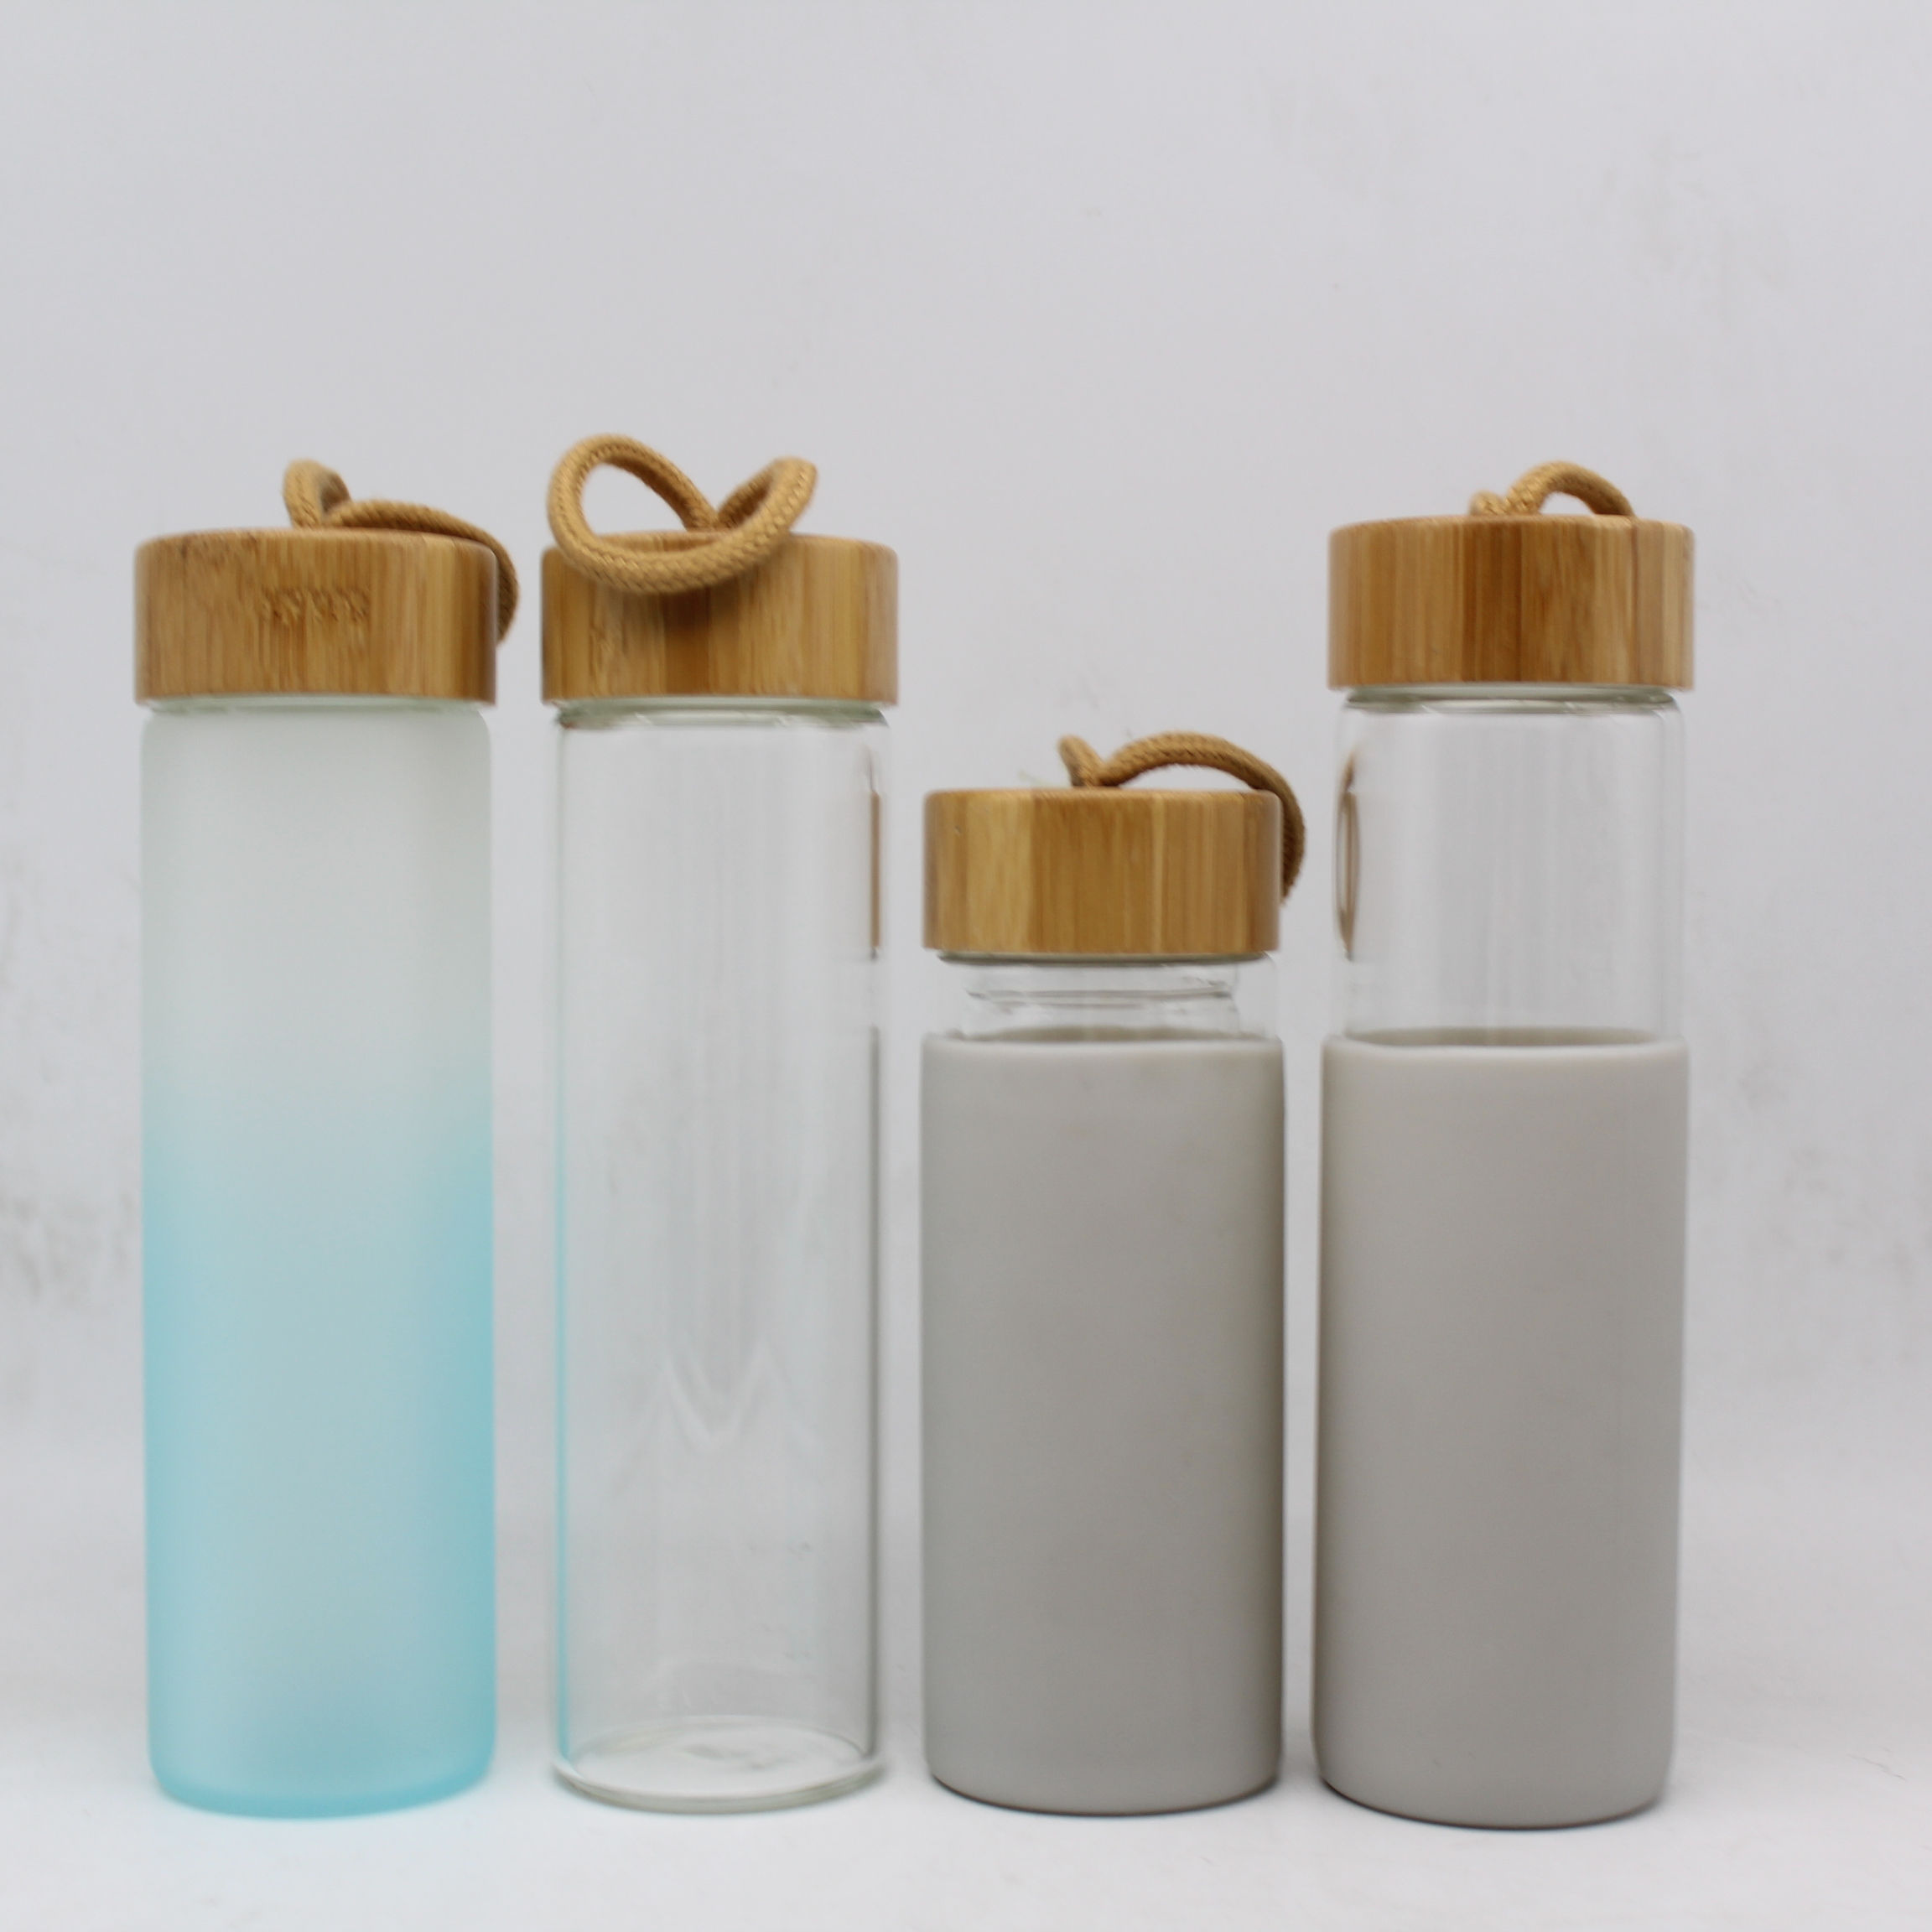 Clear glass bottle with tea and fruit infuser,BPA free leaking proof glass bottle with lid,